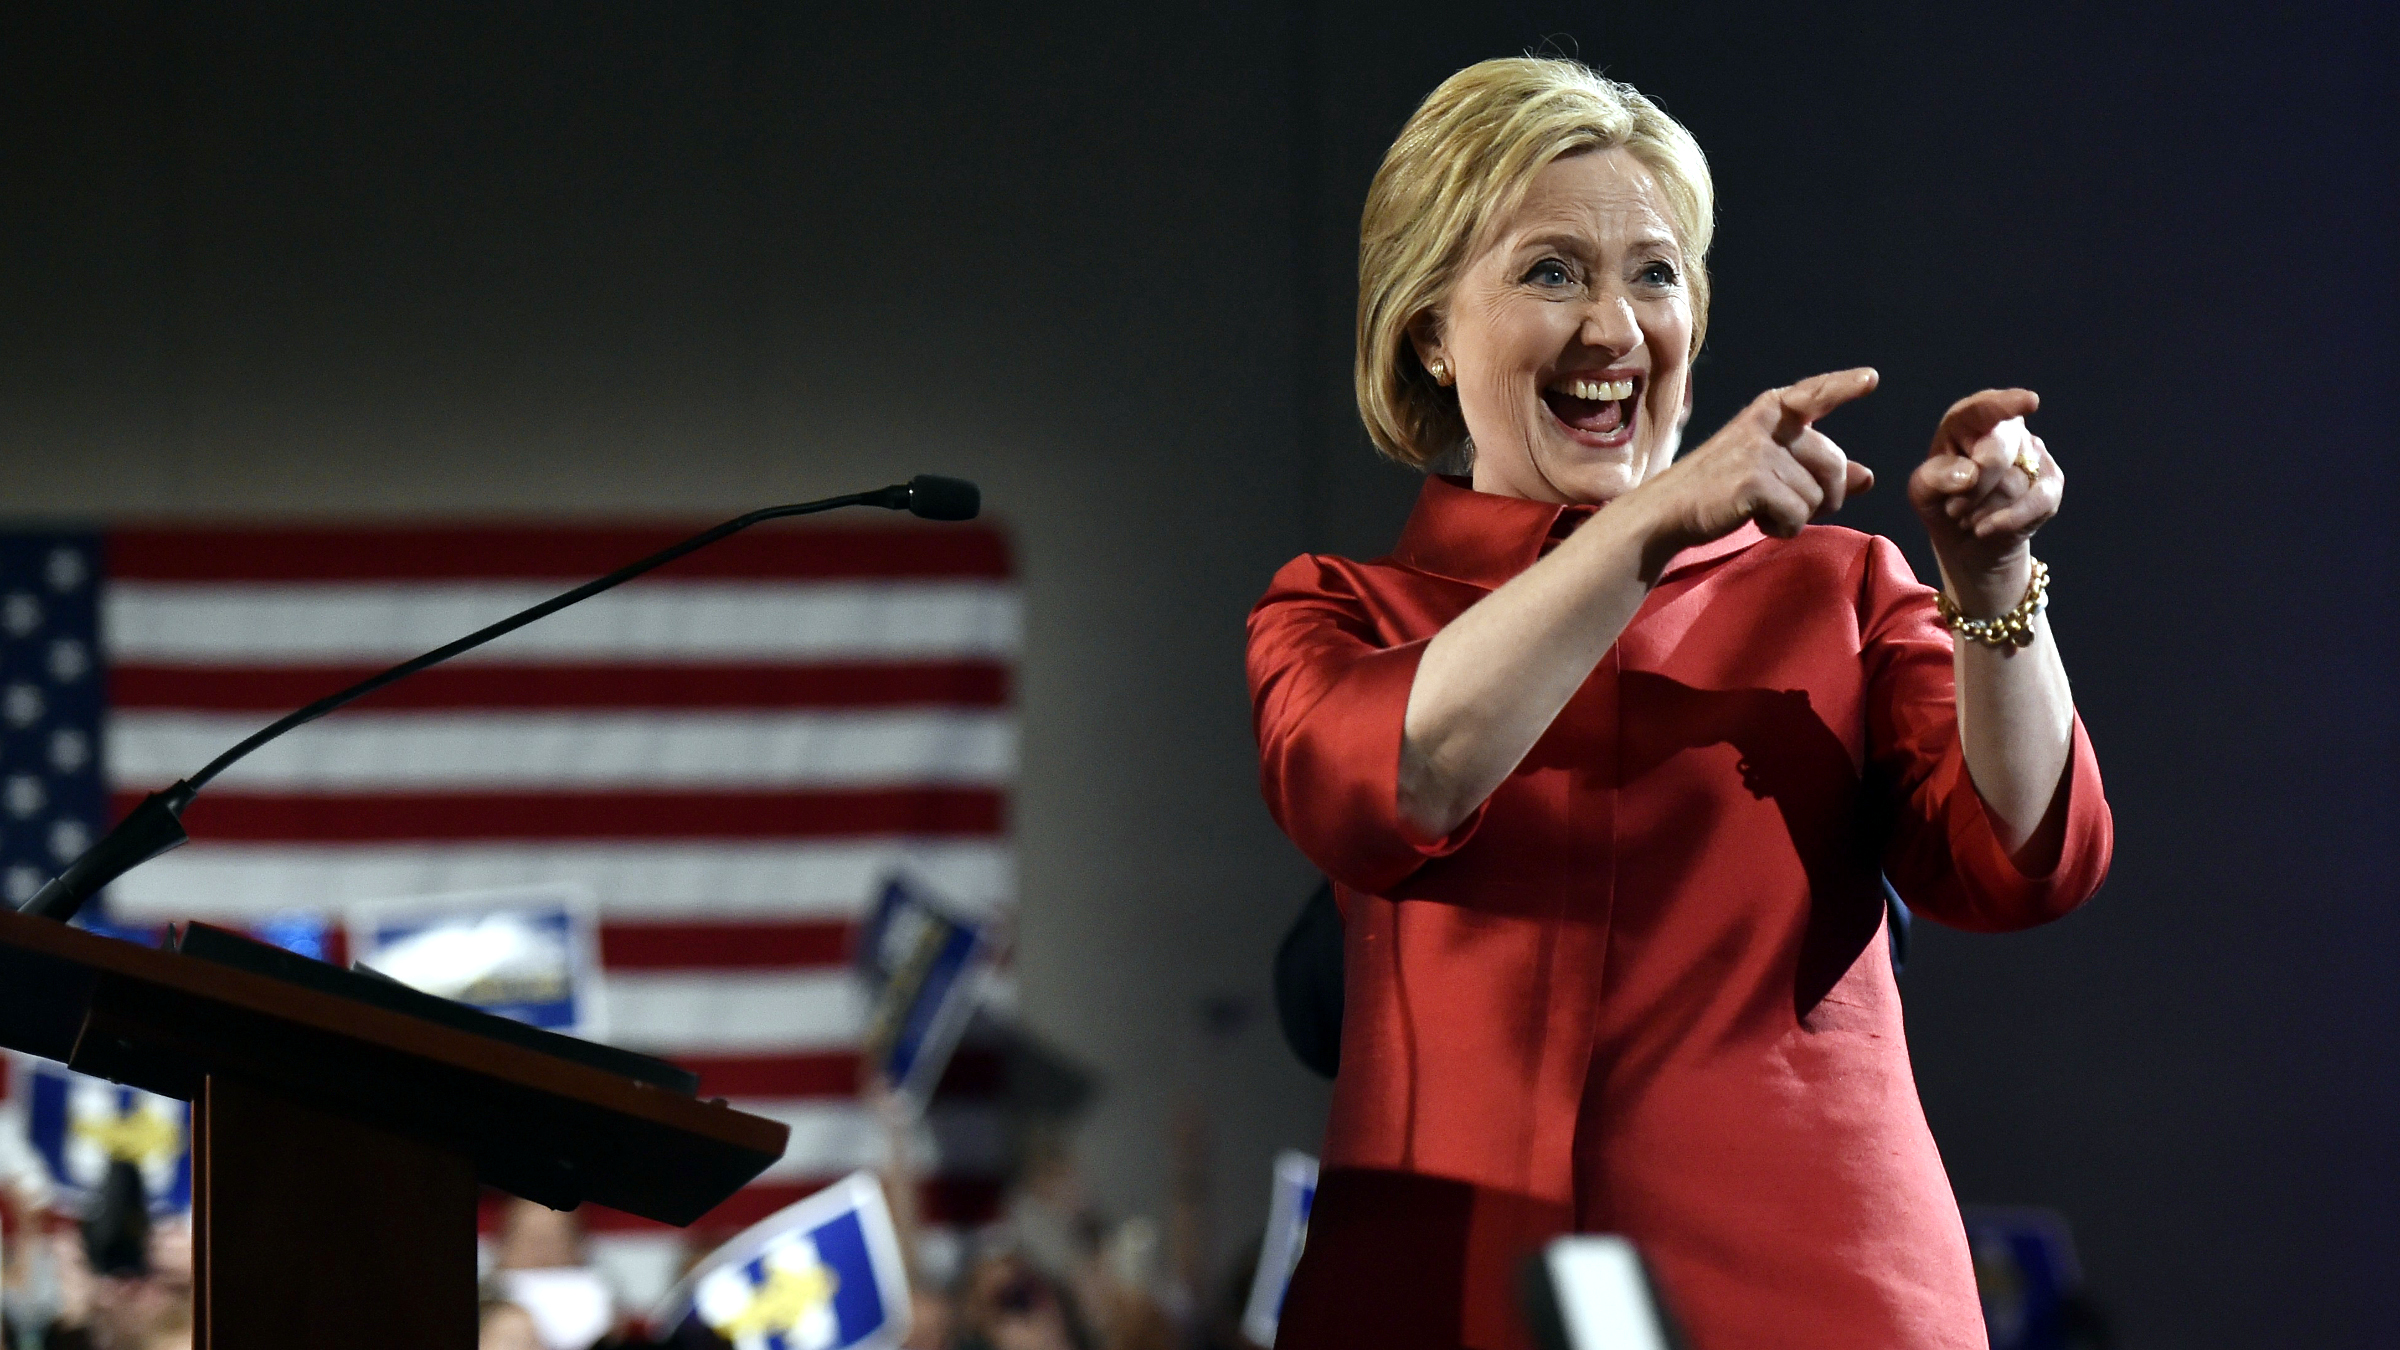 Democratic U.S. presidential candidate Hillary Clinton gestures to supporters after she was projected to be the winner in the Democratic caucuses in Las Vegas, Nevada February 20, 2016.